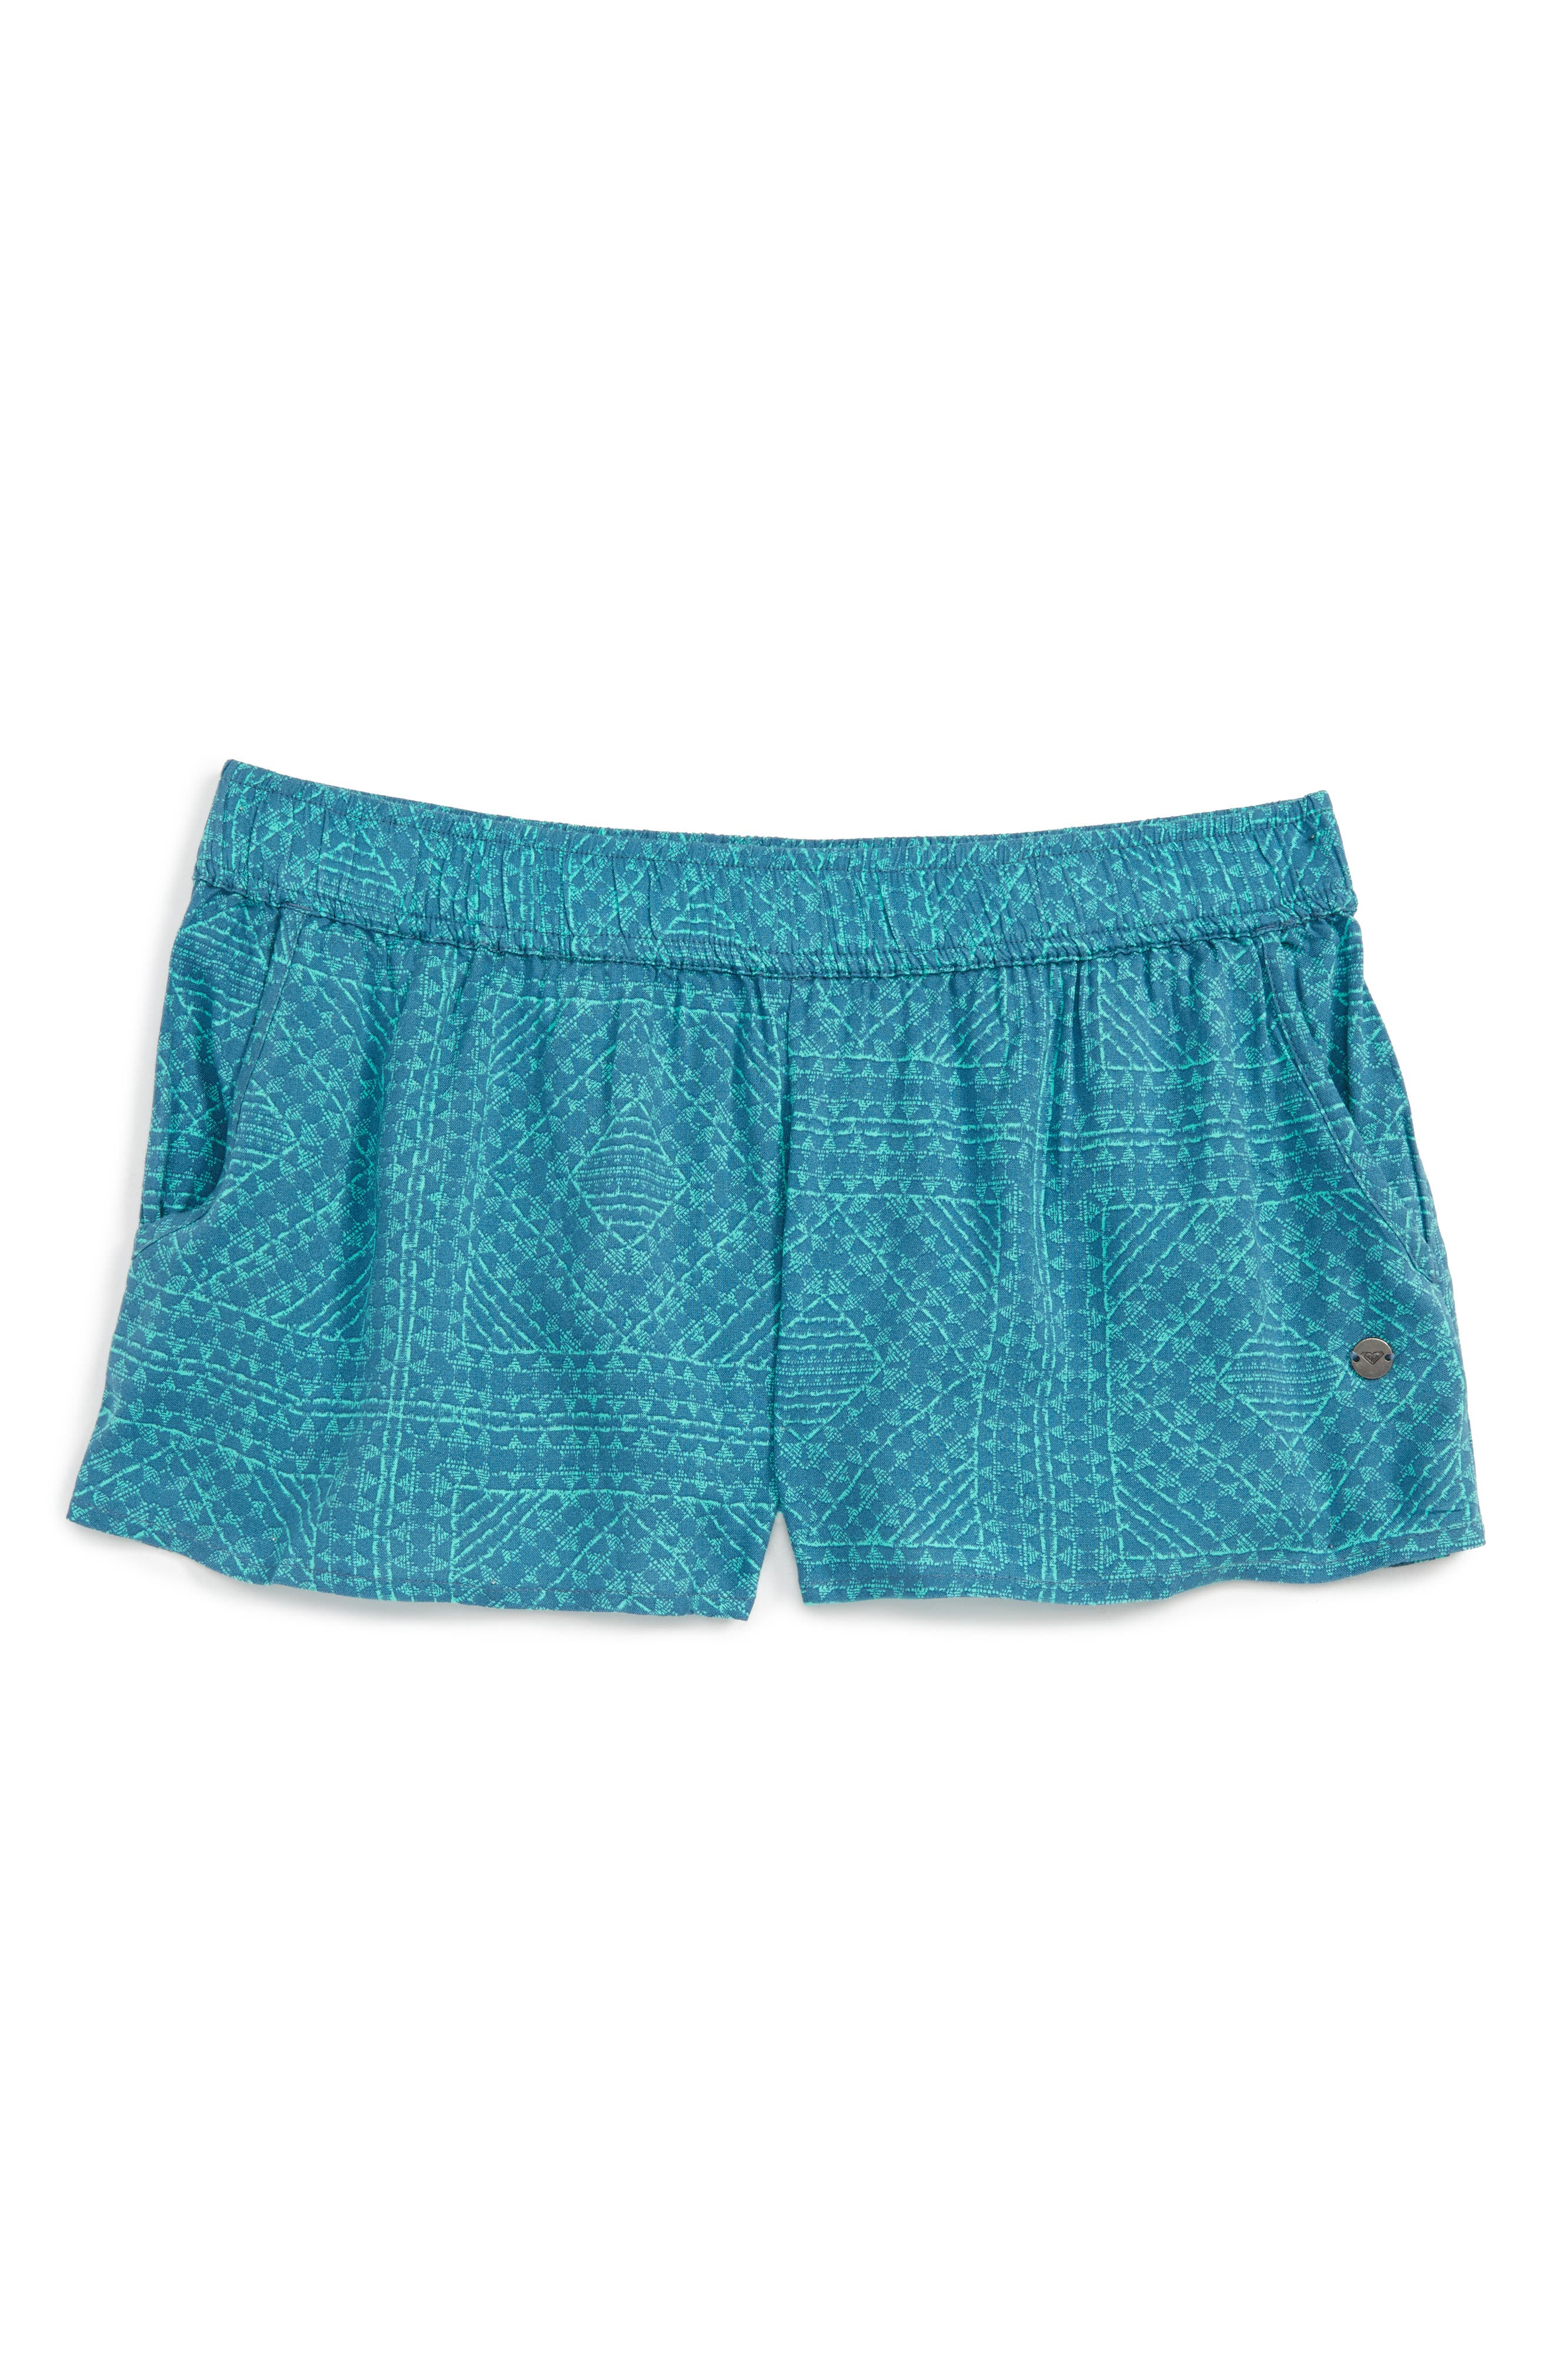 Roxy Something I Will Believe Shorts (Big Girls)